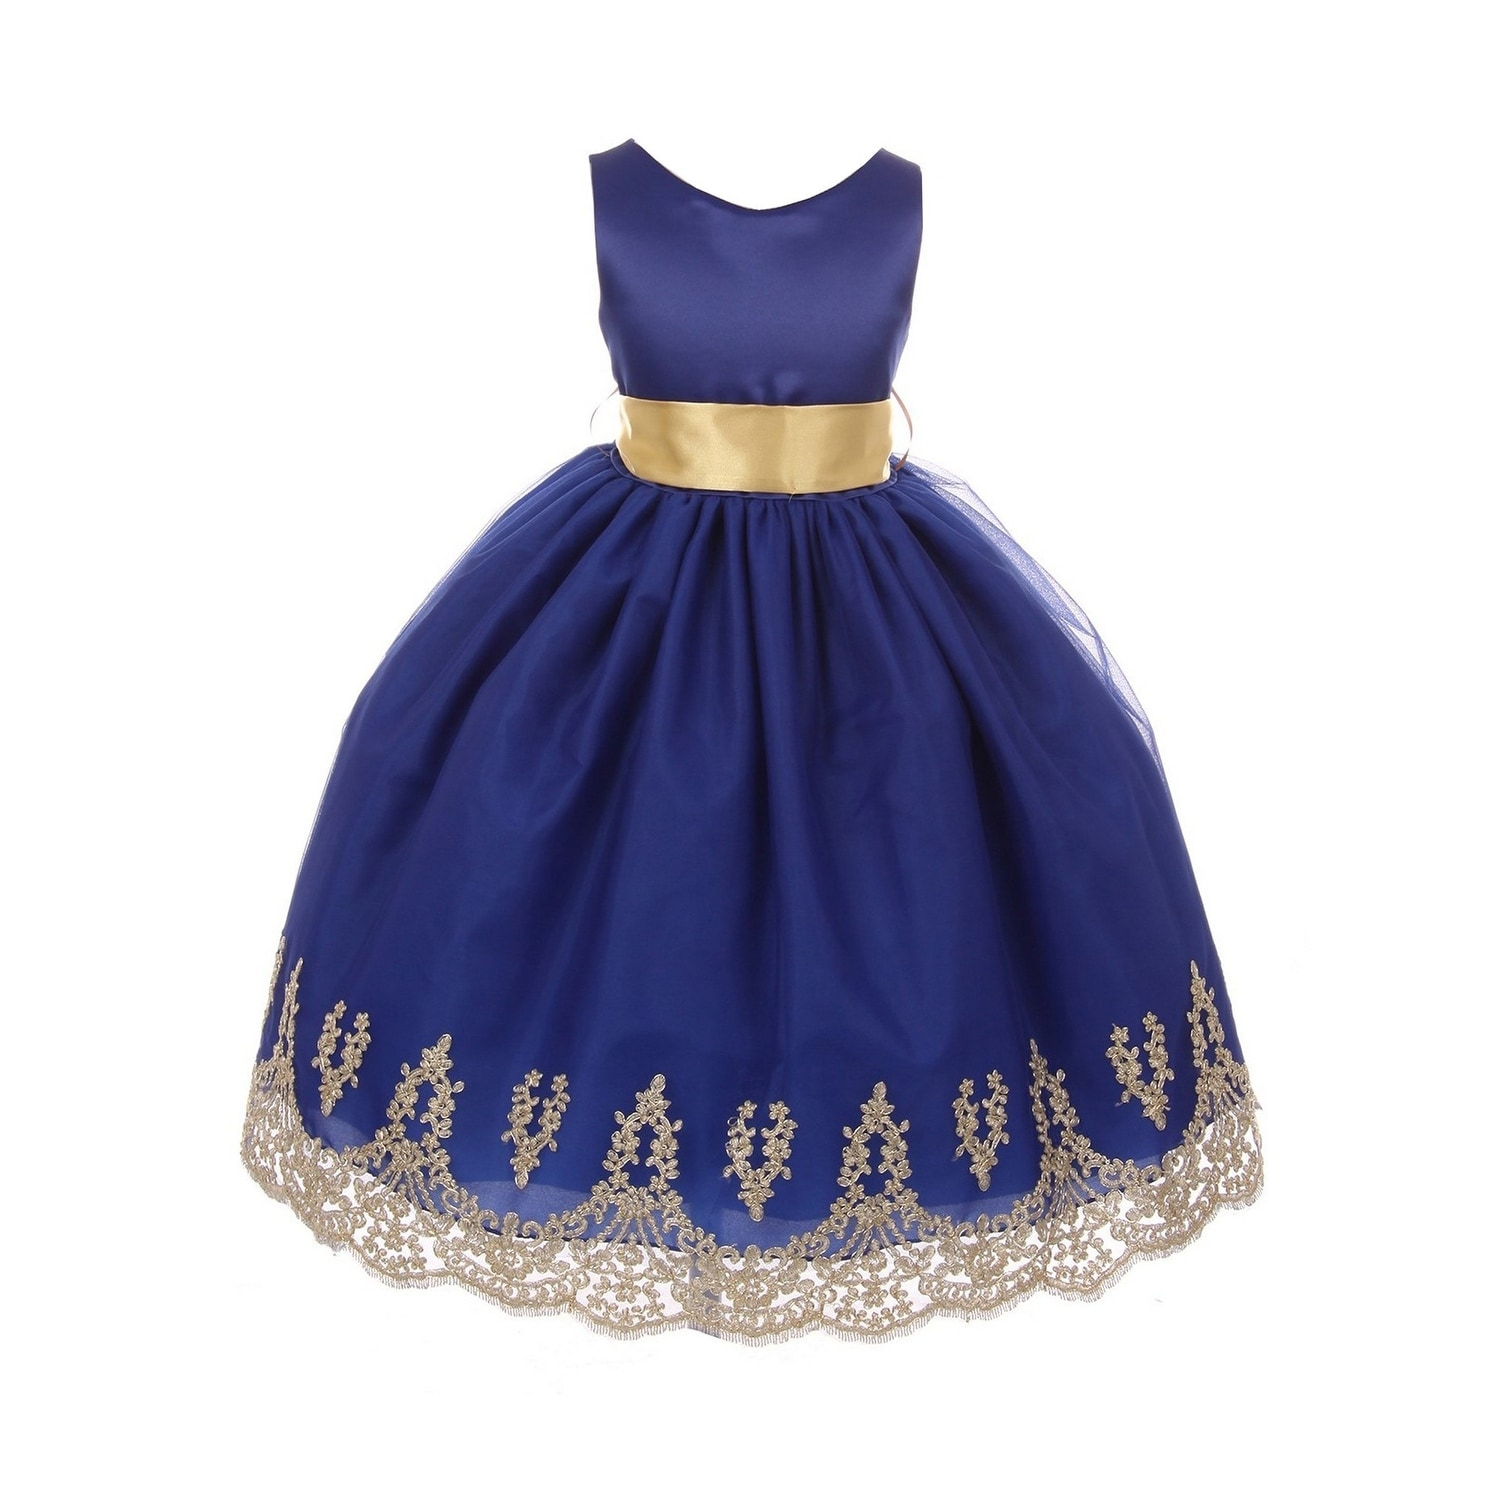 f28c3c85 Shop Big Girls Royal Blue Gold Lace Embroidery Junior Bridesmaid Dress -  Free Shipping Today - Overstock - 22465784